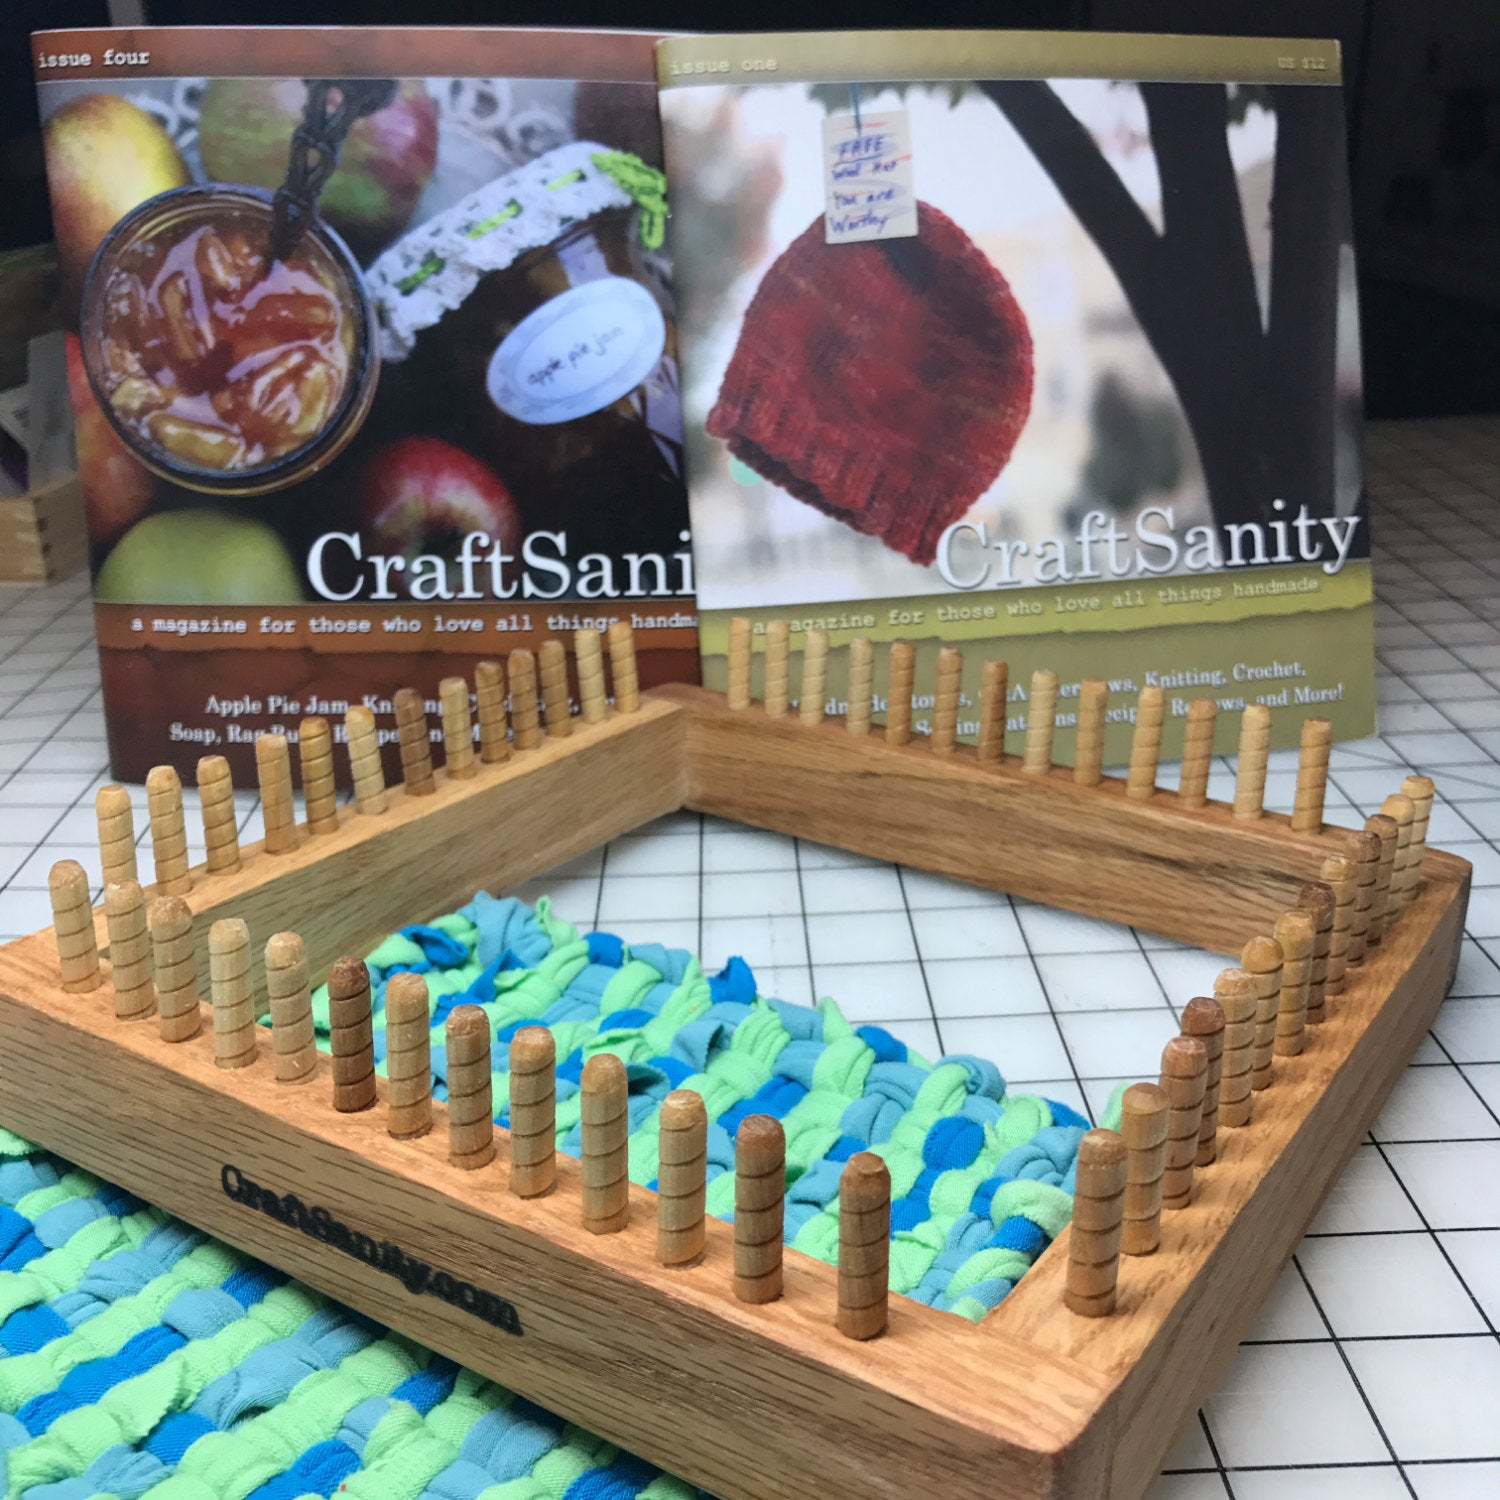 Sale! CraftSanity Potholder Loom & TWO print issues of CraftSanity Magazine